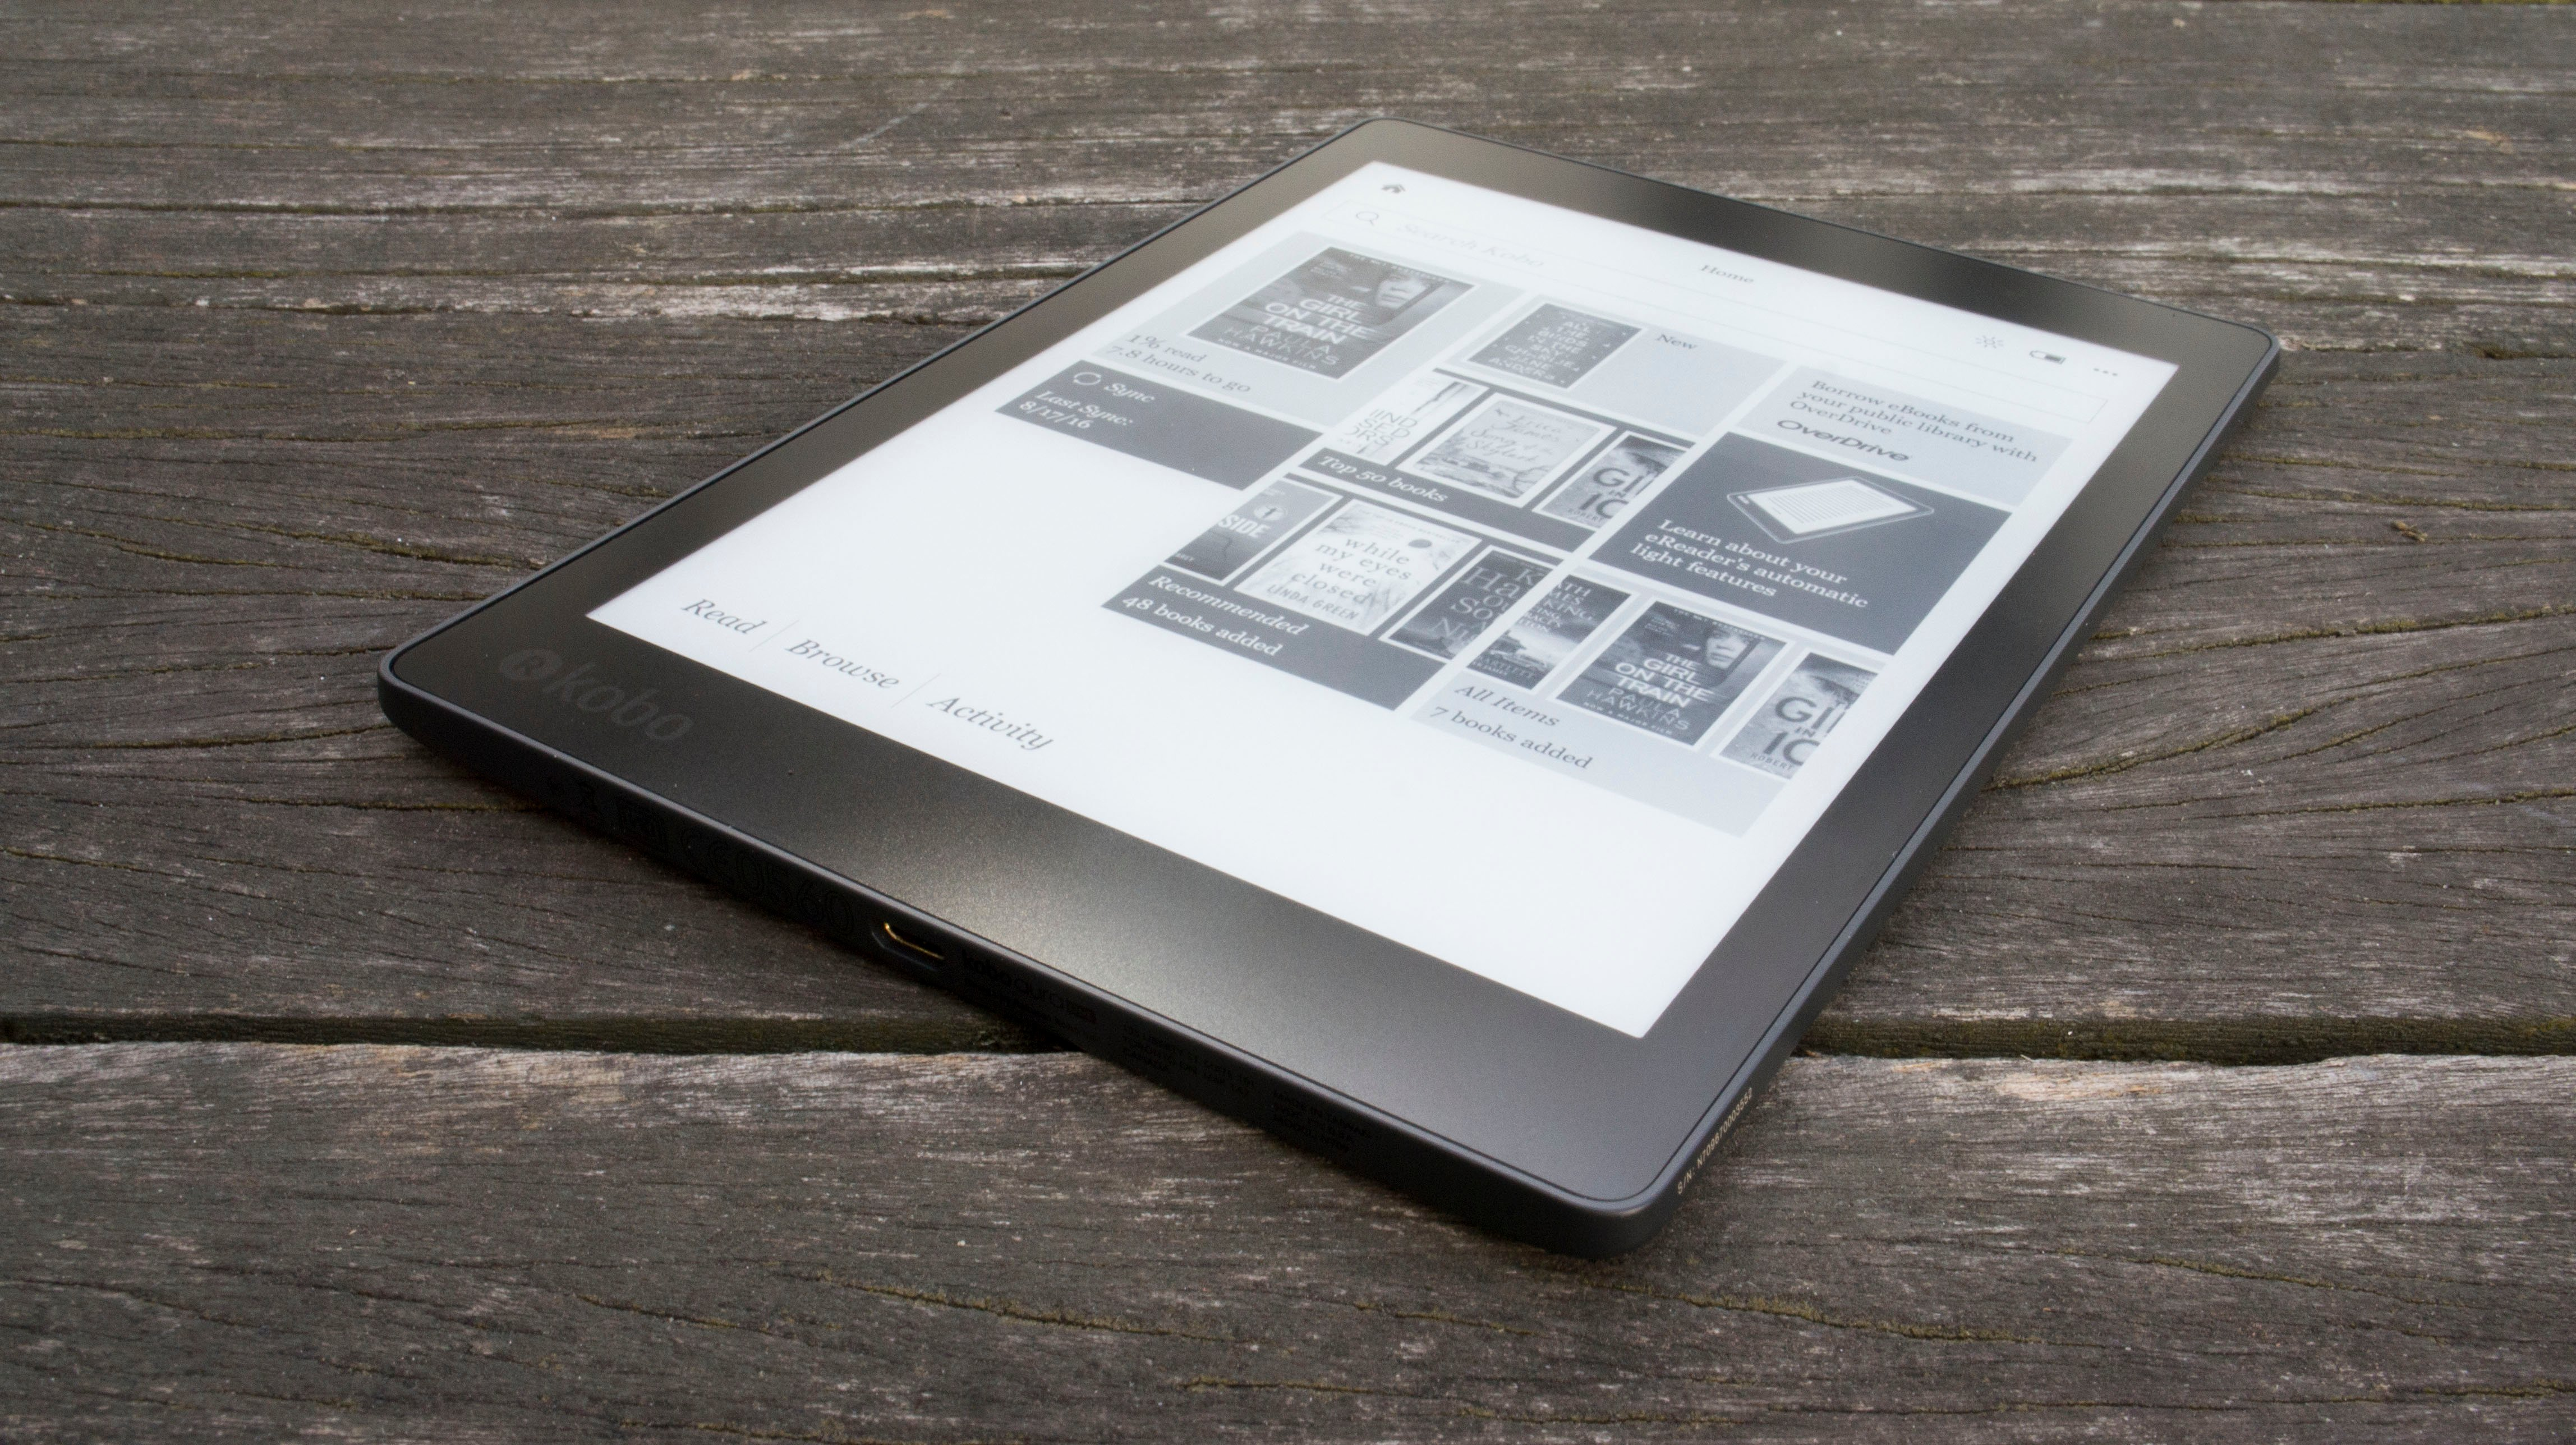 Kobo Aura One Is a Big Waterproof E-Reader